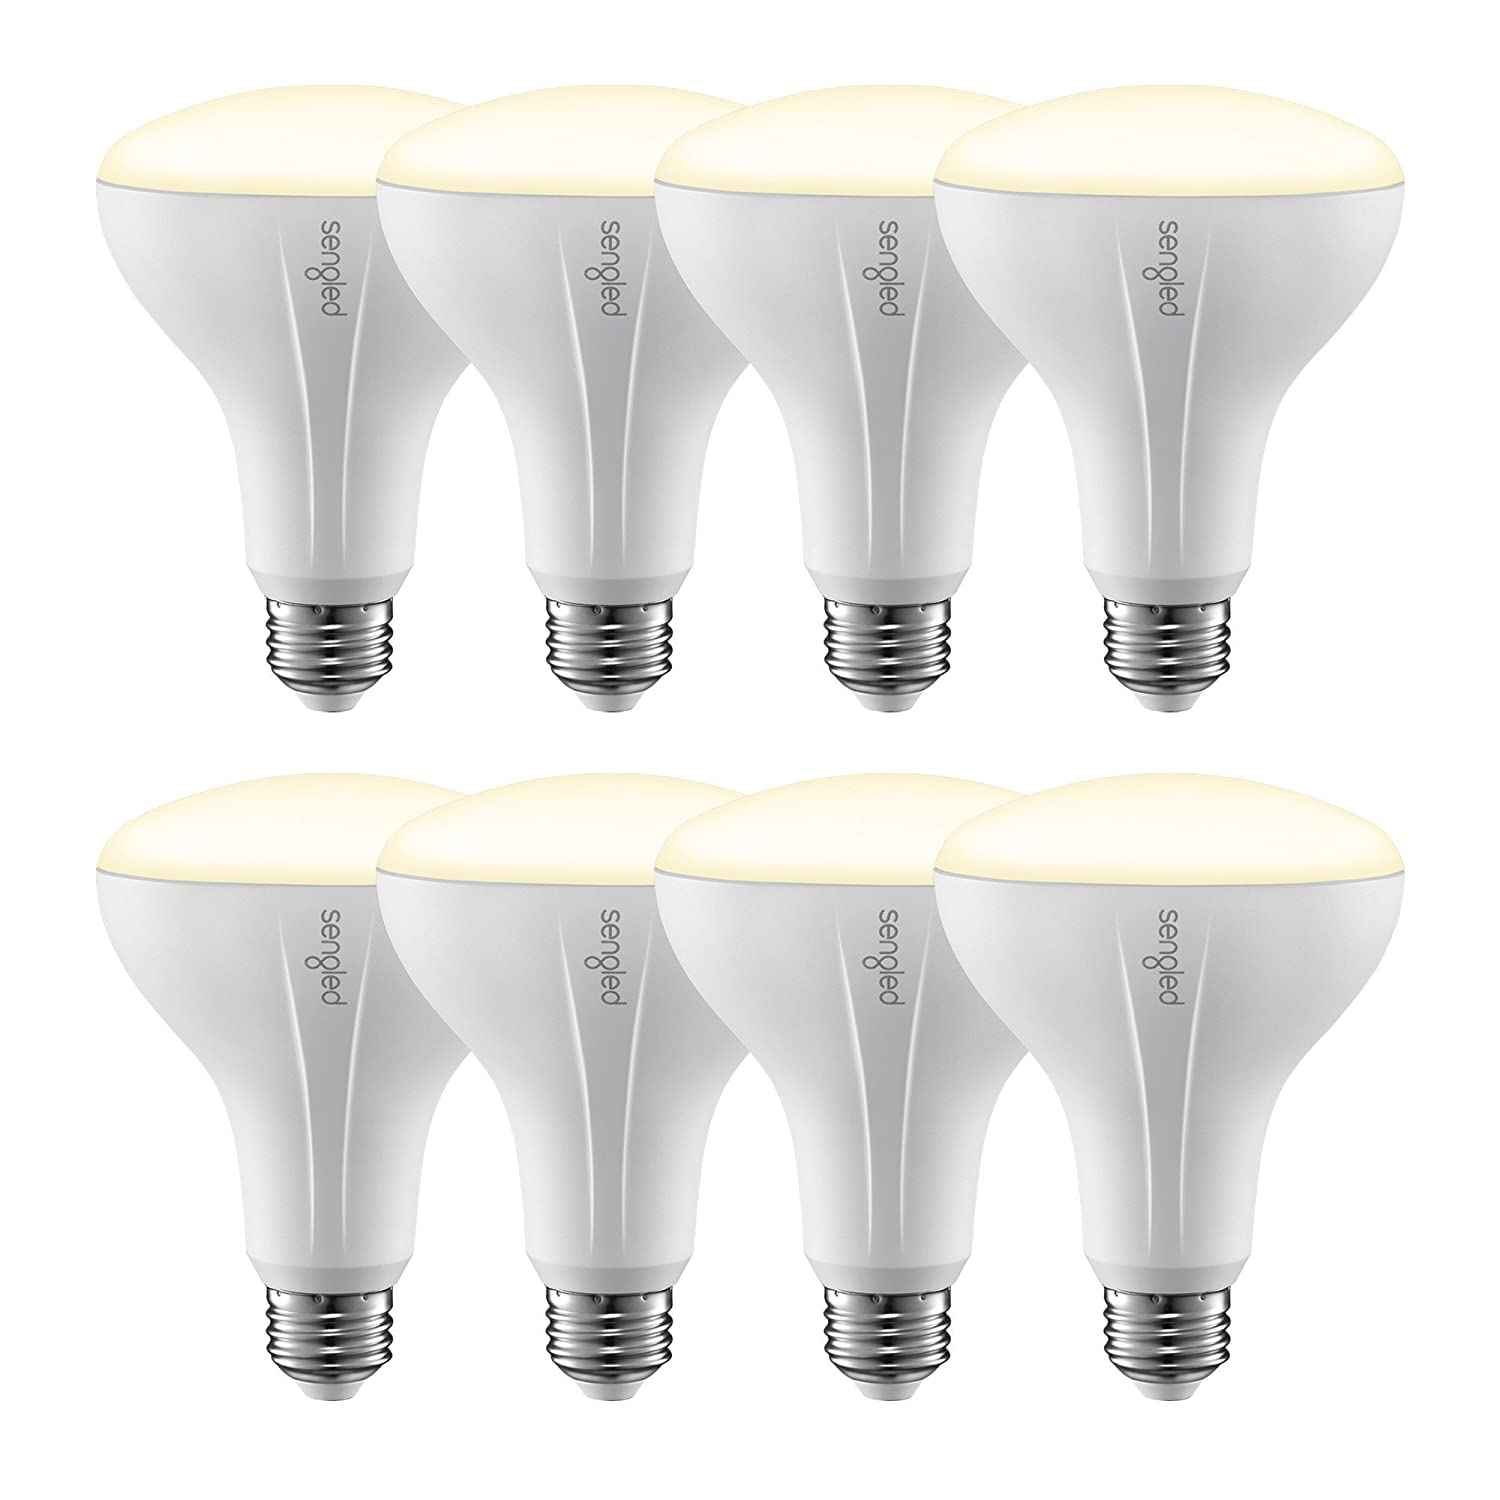 Element Classic by Sengled - BR30 Soft White 2700K Smart LED Bulb (Hub Required), Works with Alexa, Google Assistant, Echo Plus & SmartThings - 8 Pack